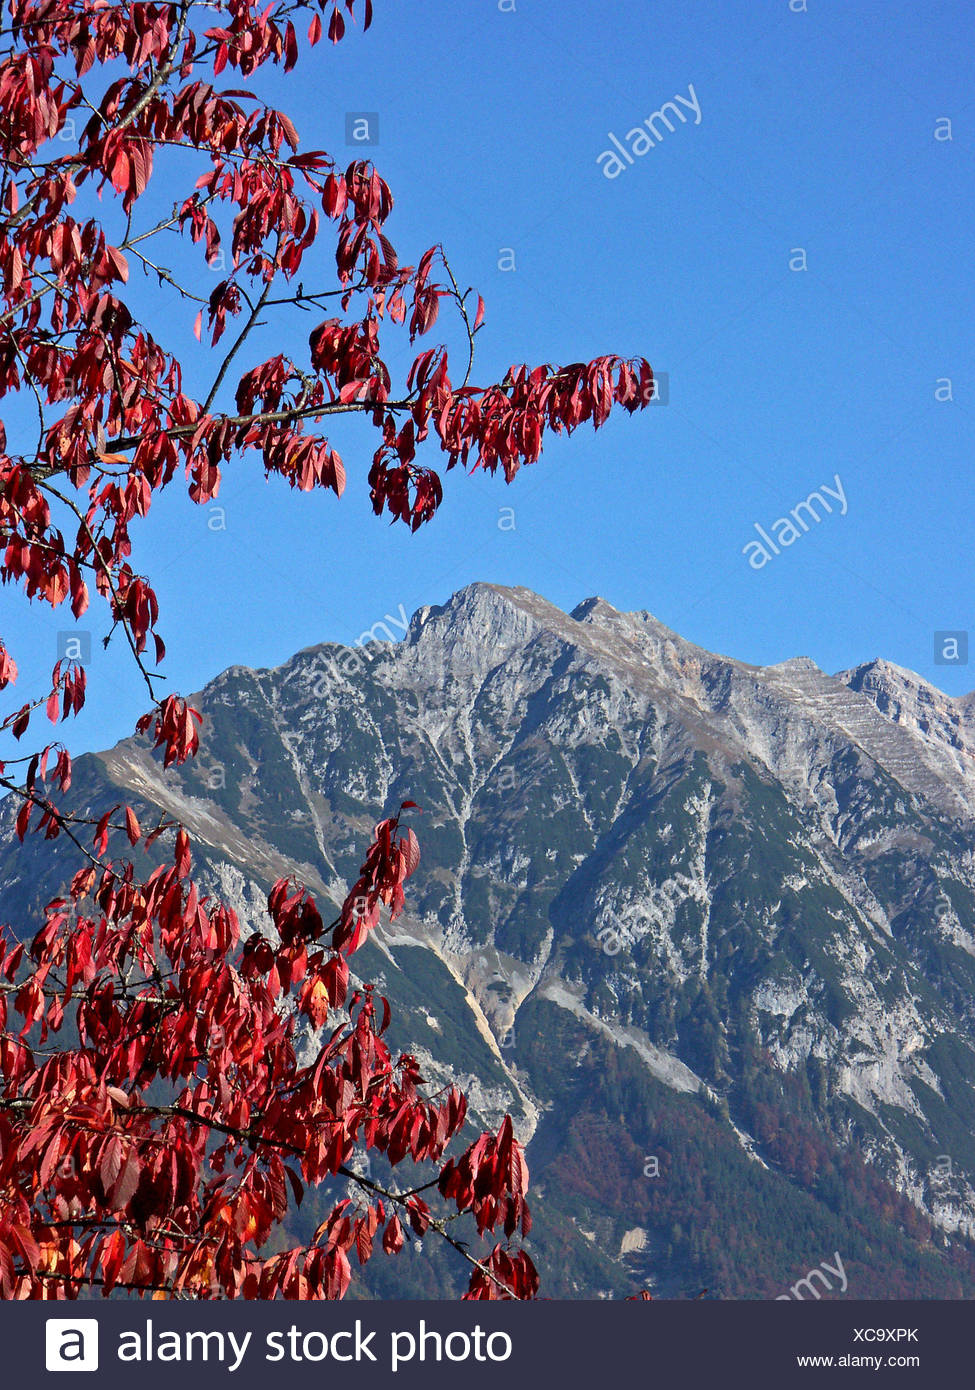 deciduous trees autumnal atmosphere autumn foliage season mountain fall autumn Stock Photo